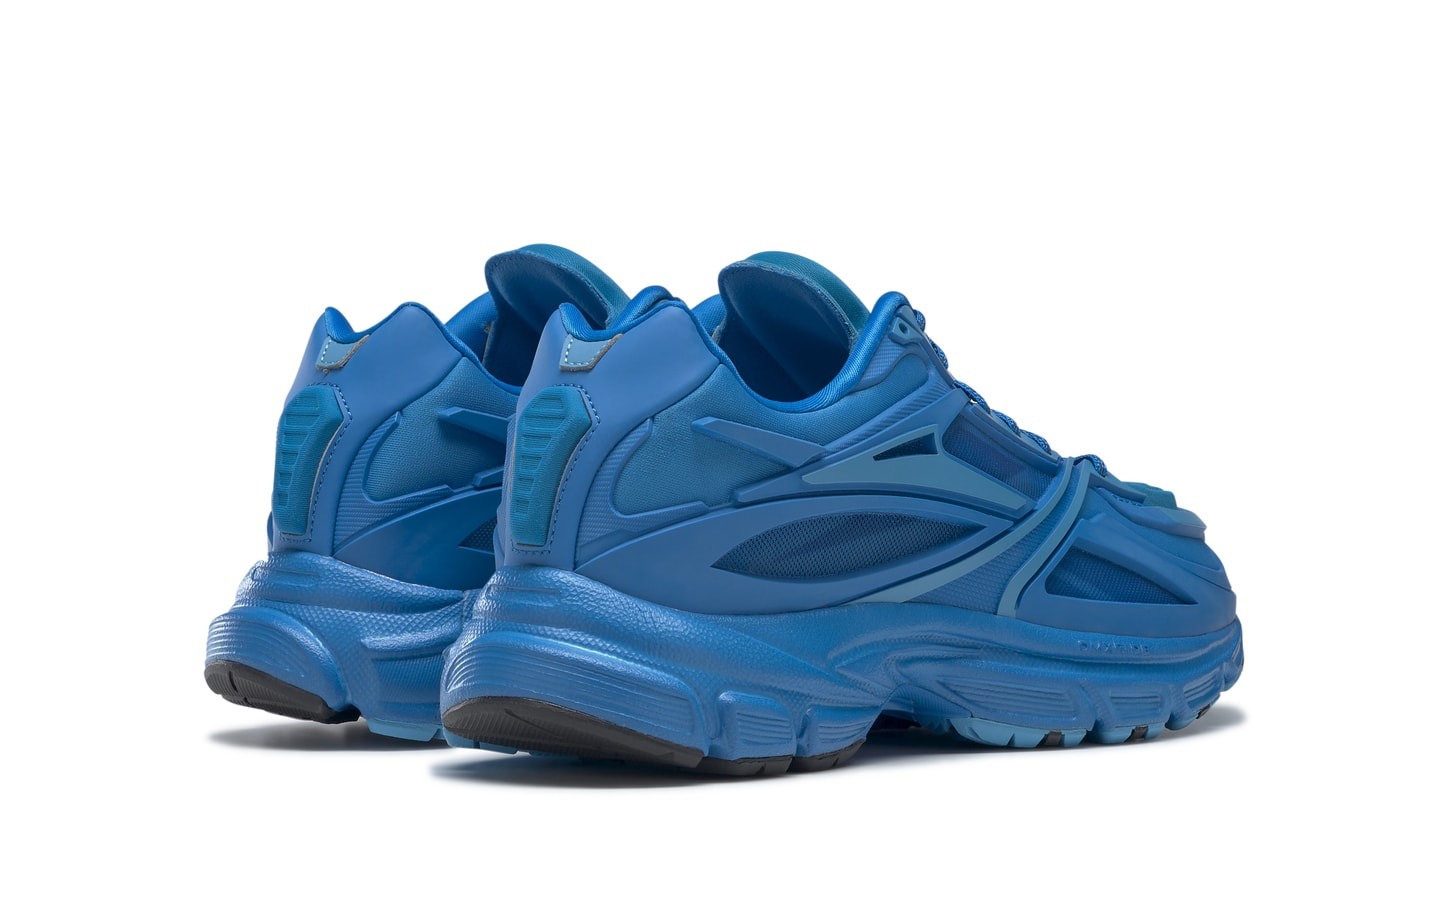 """Reebok's Premier Road Modern Receives a """"Pure Blue"""" Makeover for Spring"""